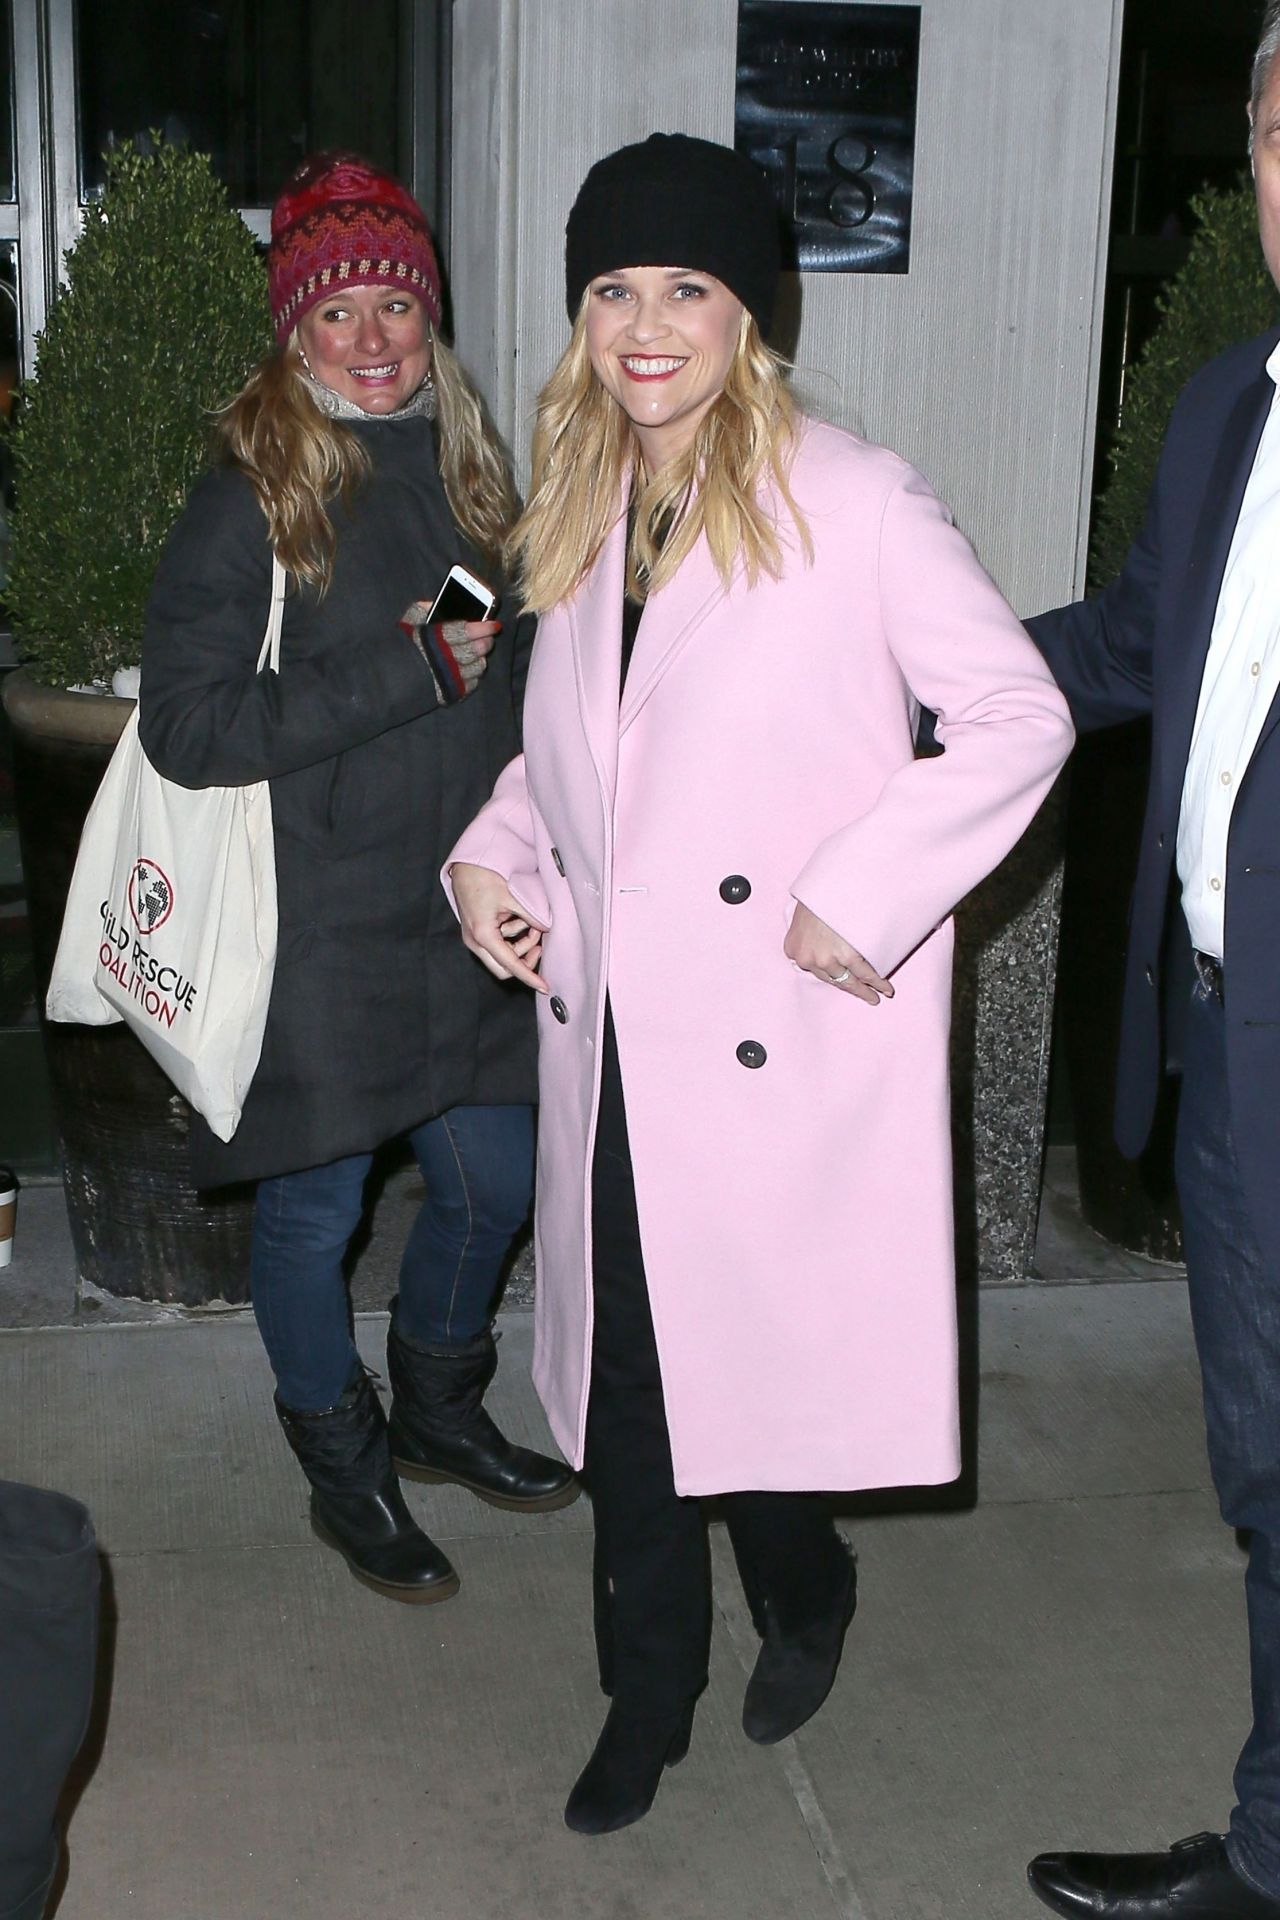 http://celebmafia.com/wp-content/uploads/2018/03/reese-witherspoon-leaving-her-hotel-in-new-york-03-08-2018-1.jpg